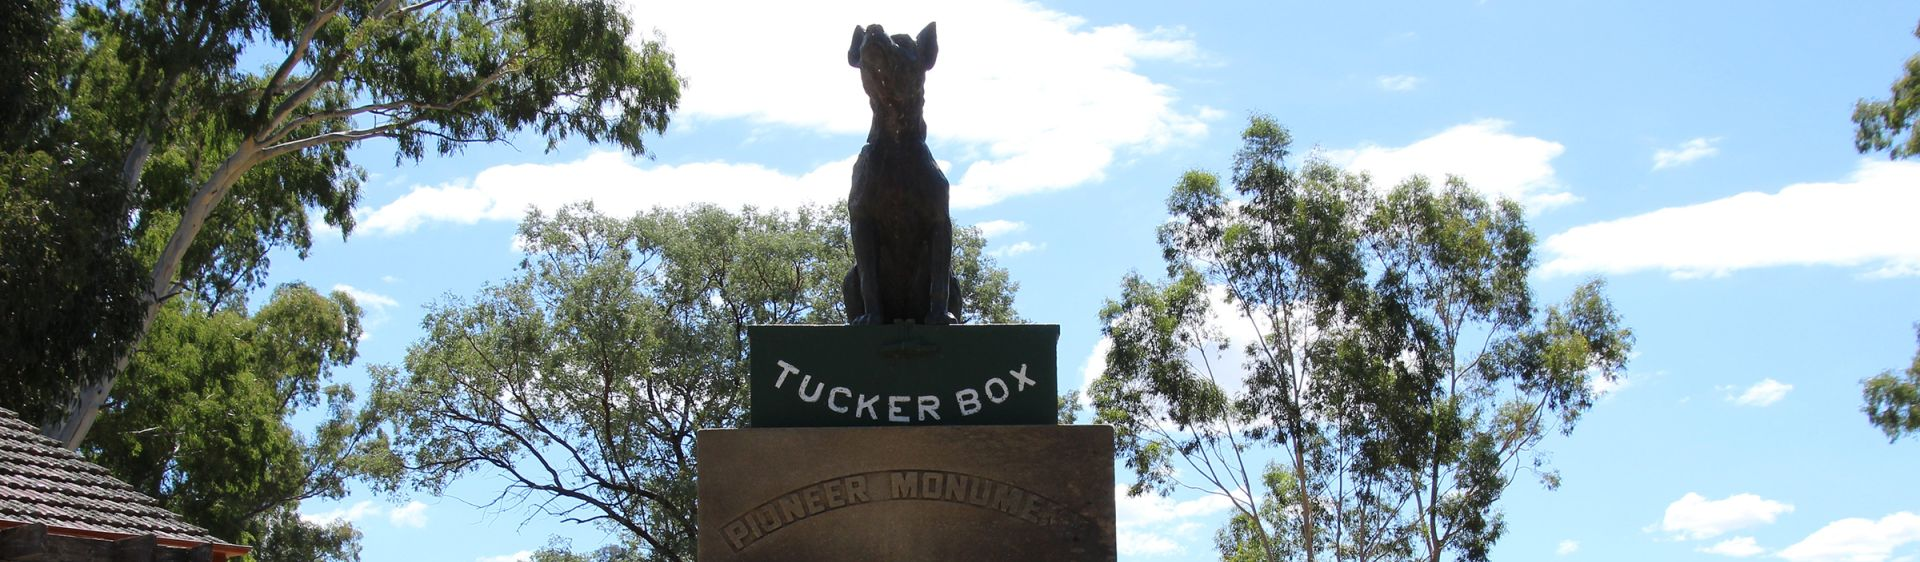 Dog on the Tuckerbox statue in Gundagai, Riverina, NSW